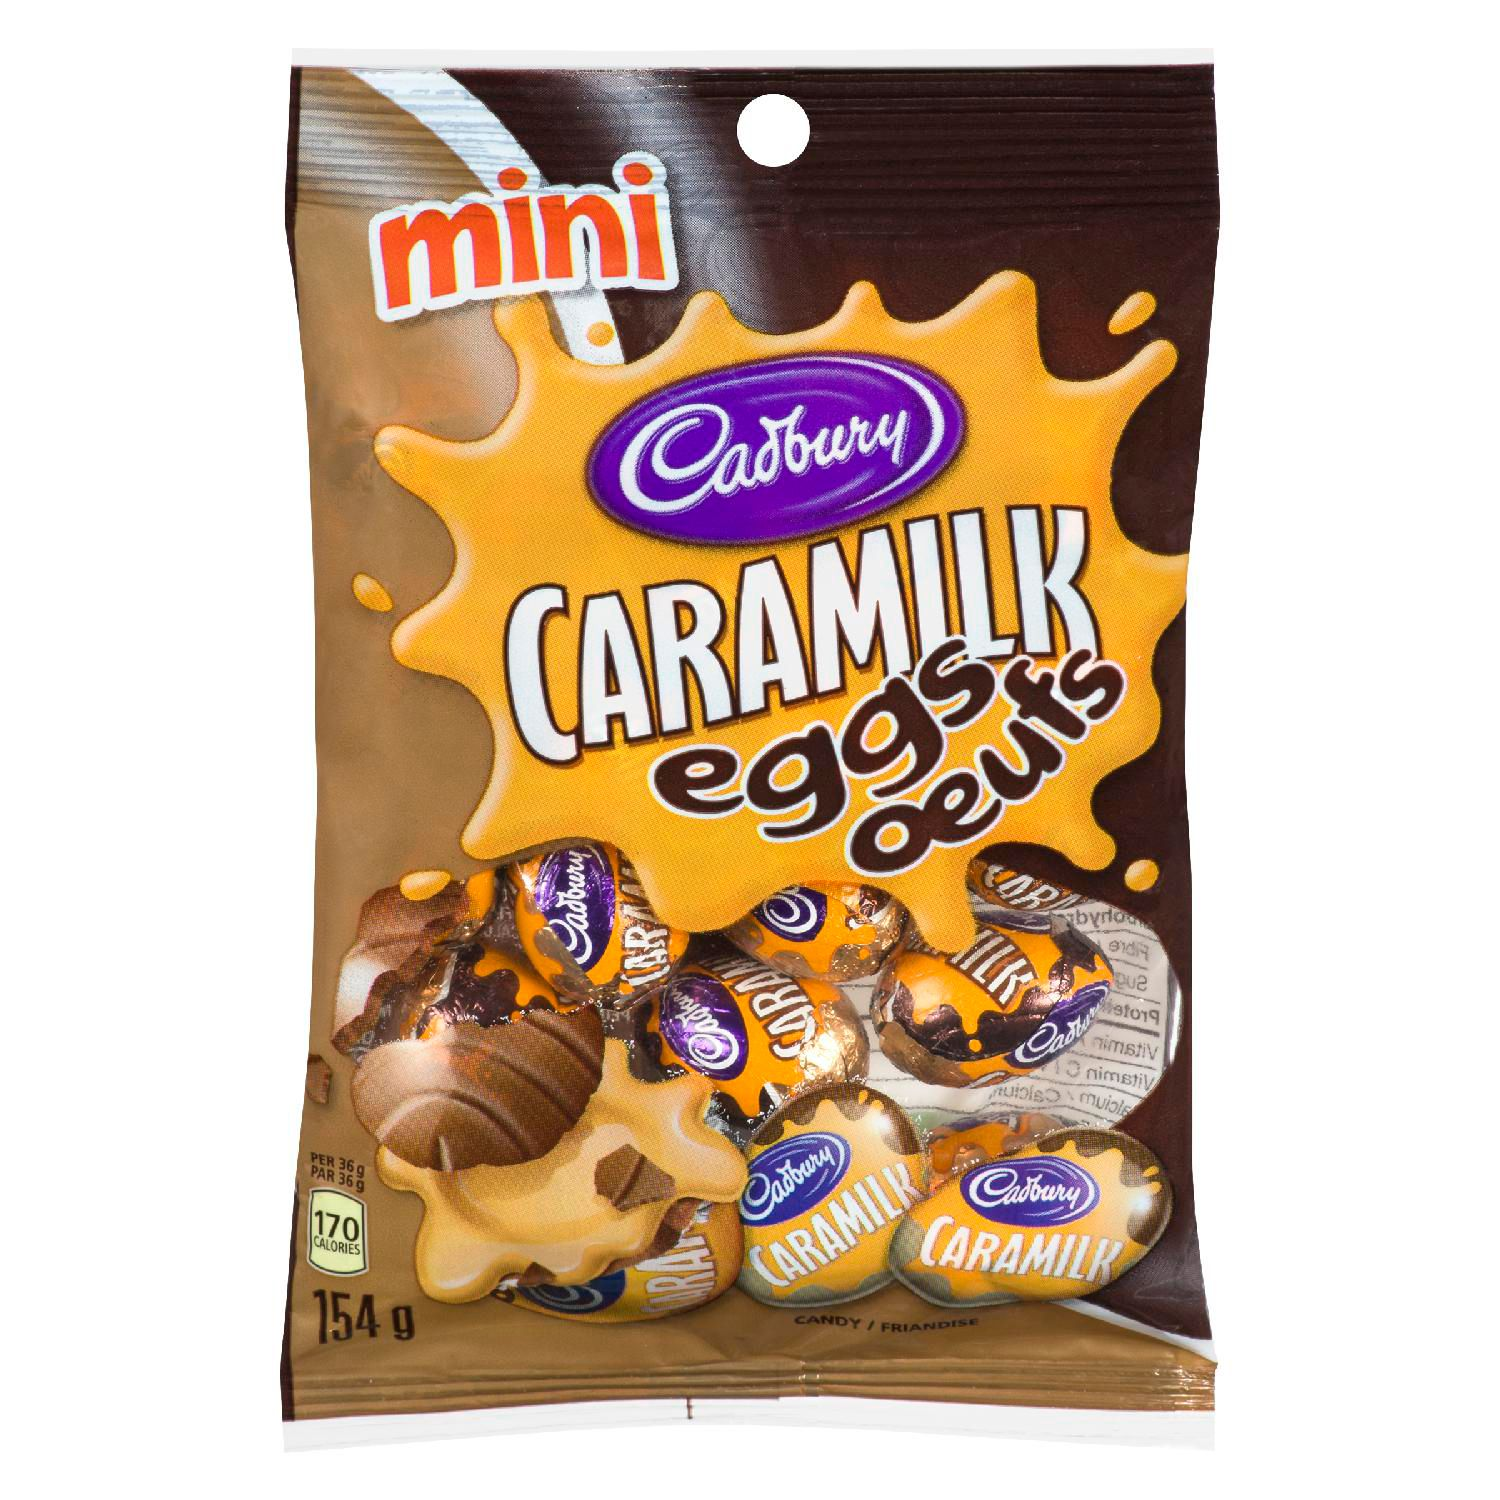 CADBURY MINI CARAMILK EGGS 154G